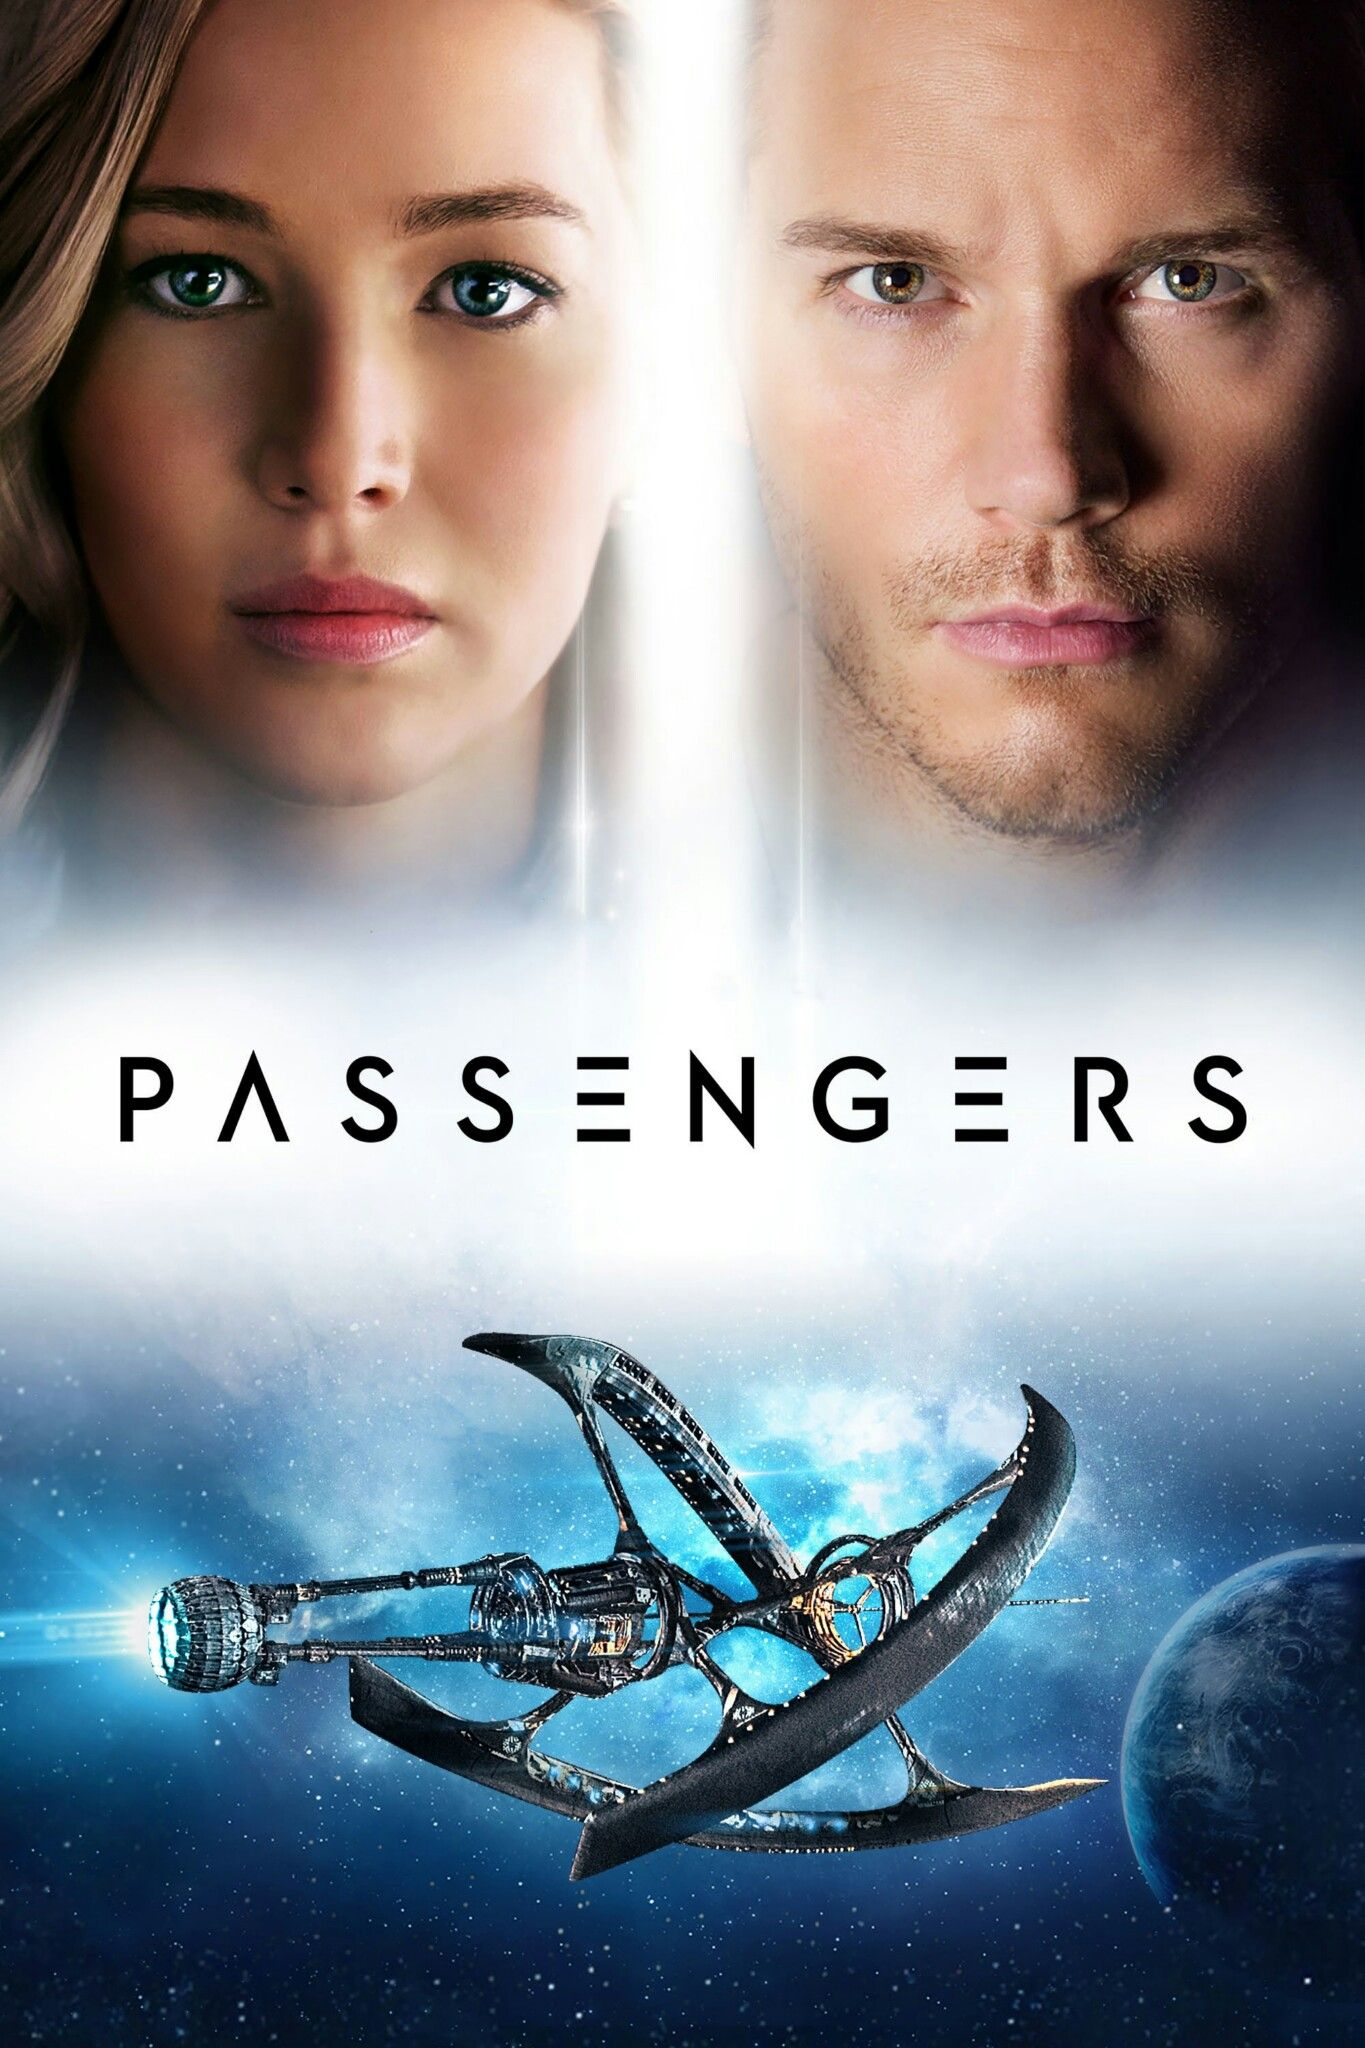 Passengers Movie Poster Fantastic Movie Posters Scifi Movie Posters